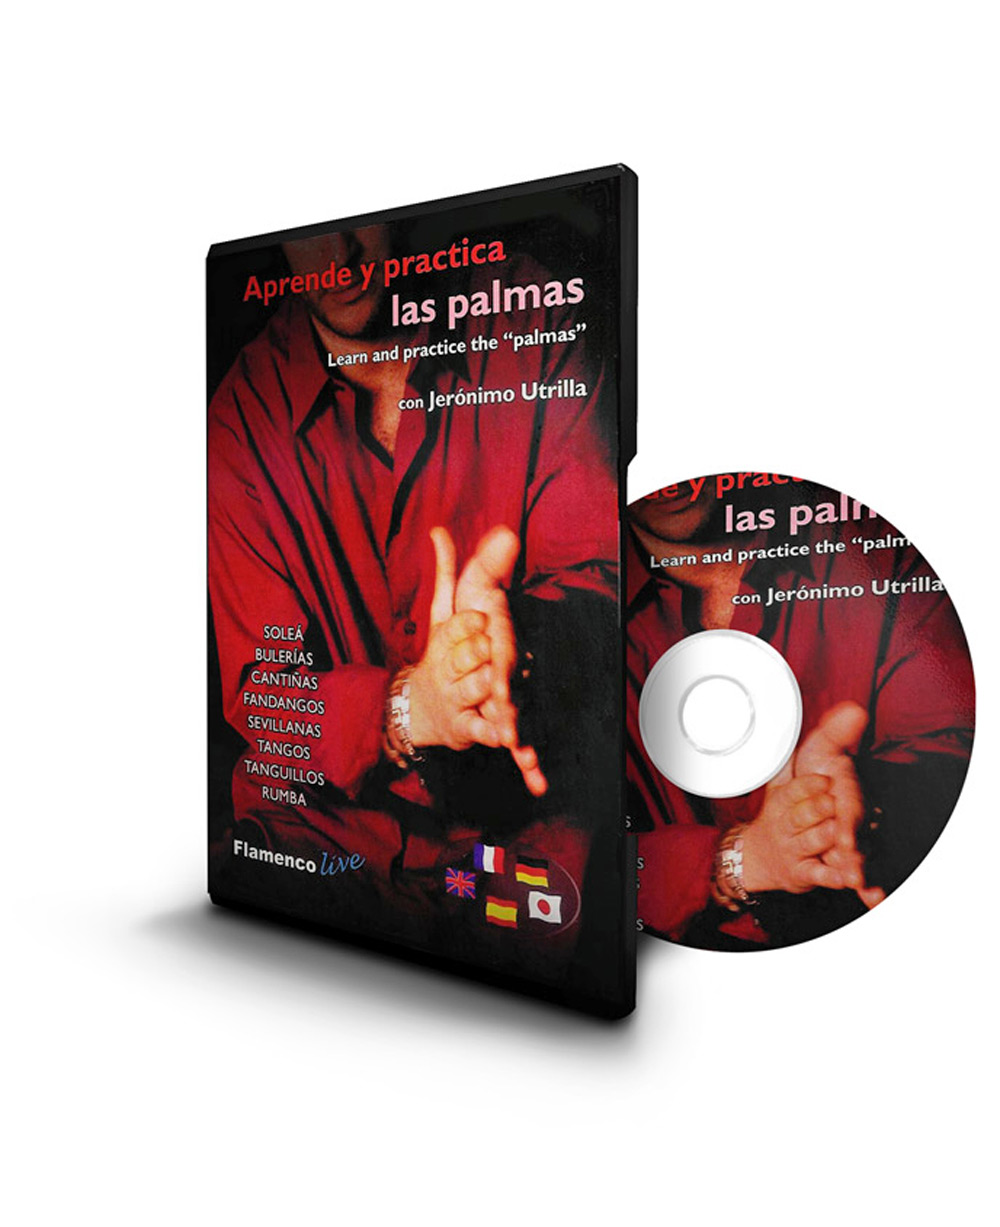 Learn and practice the palmas (DVD + Booklet)